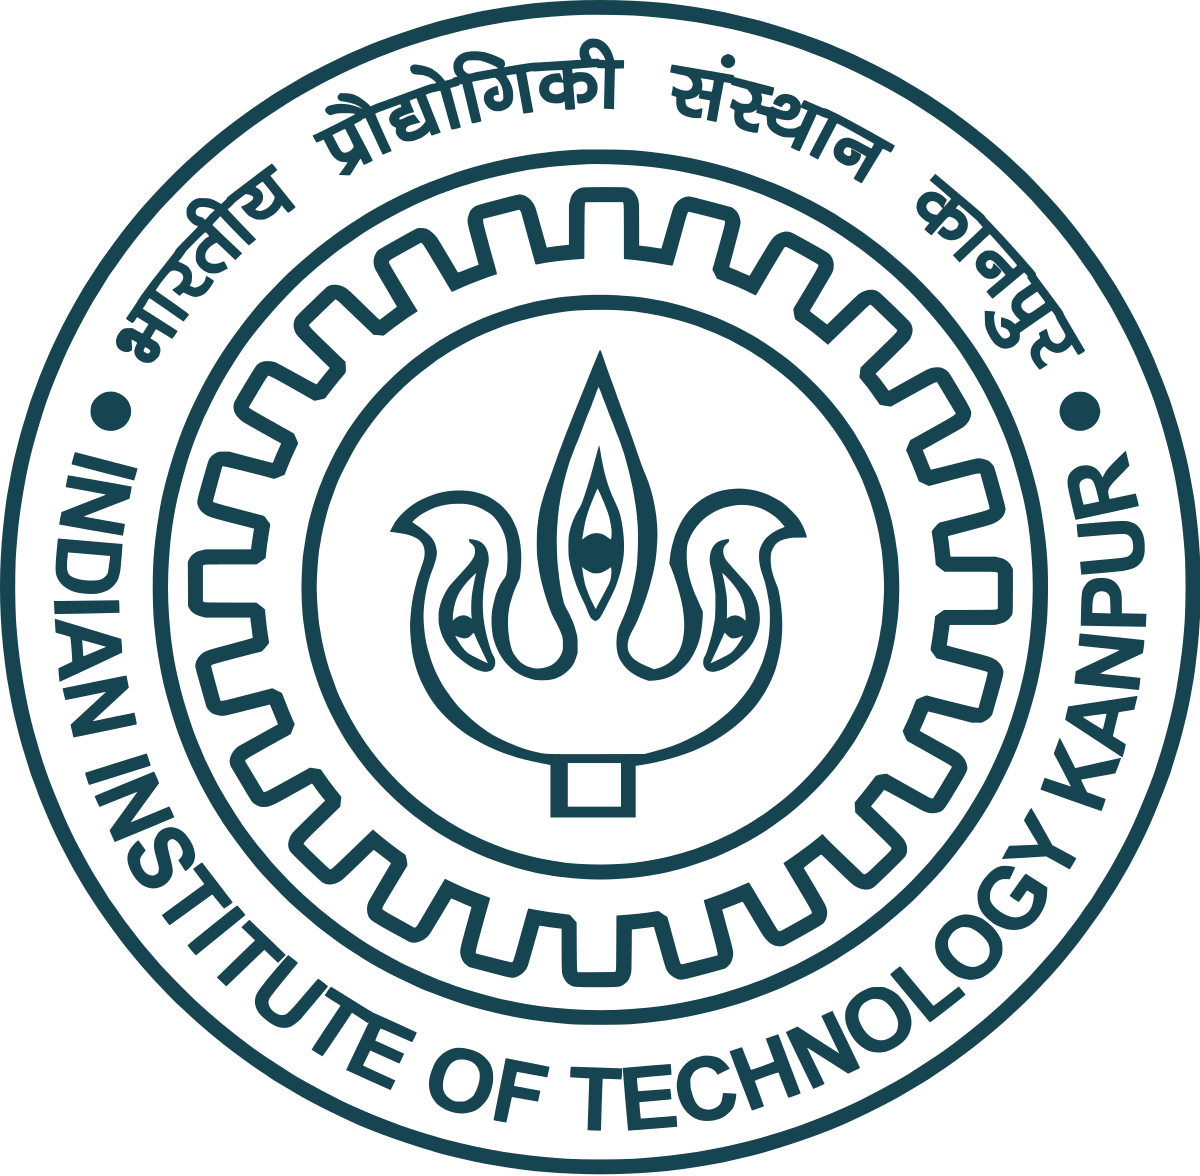 Indian Institute of Technology Kanpur.